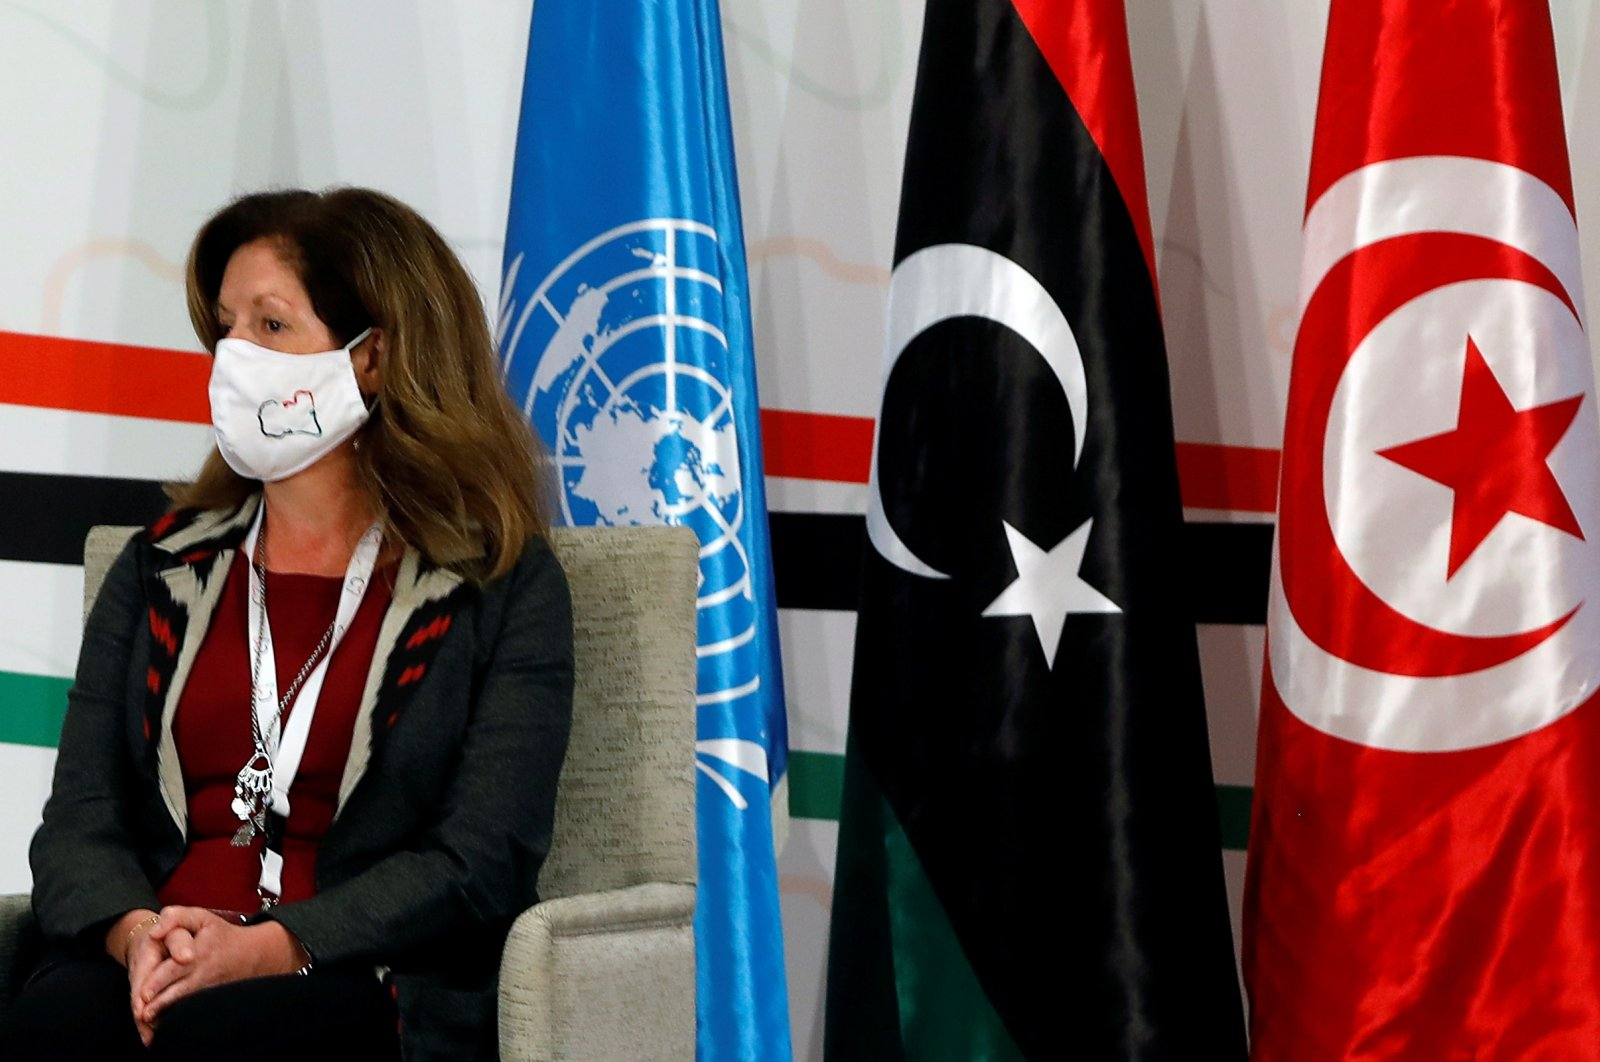 Deputy Special Representative of the U.N. Secretary-General for Political Affairs in Libya Stephanie Williams attends the Libyan Political Dialogue Forum in Tunis, Tunisia, Nov. 9, 2020. (REUTERS Photo)